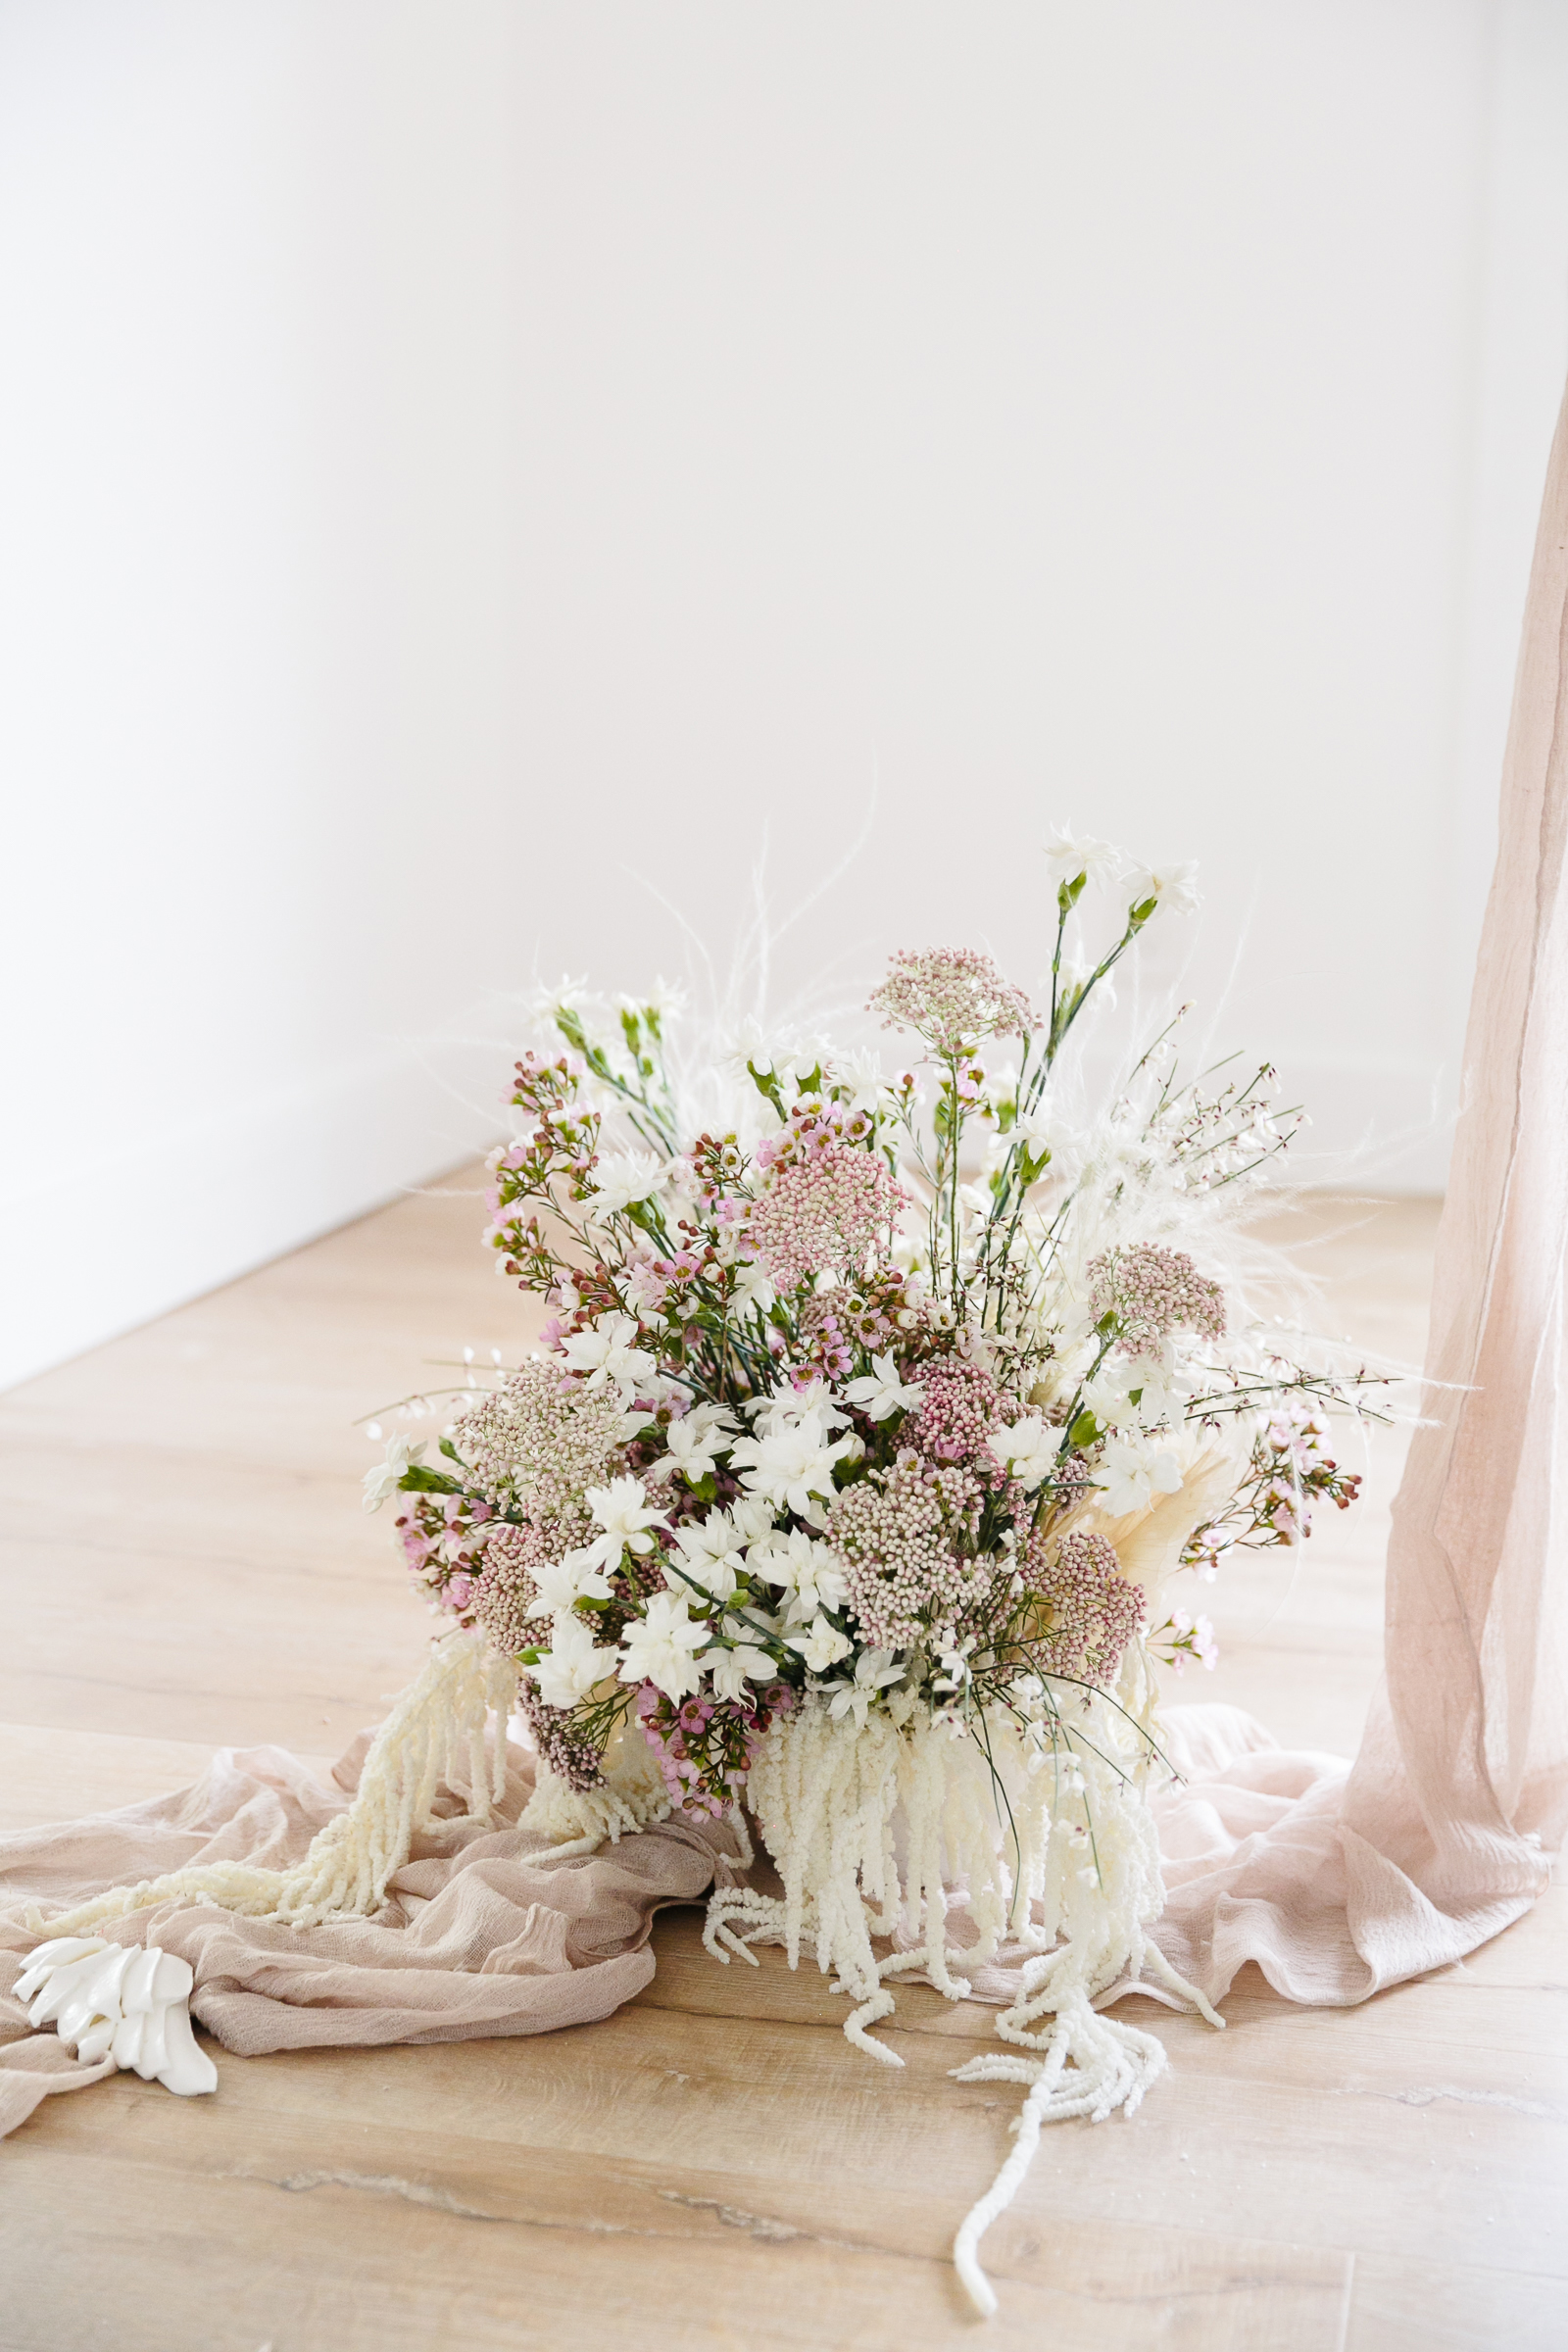 romeo and juliet valentines day party bouquet of white and blush flowers